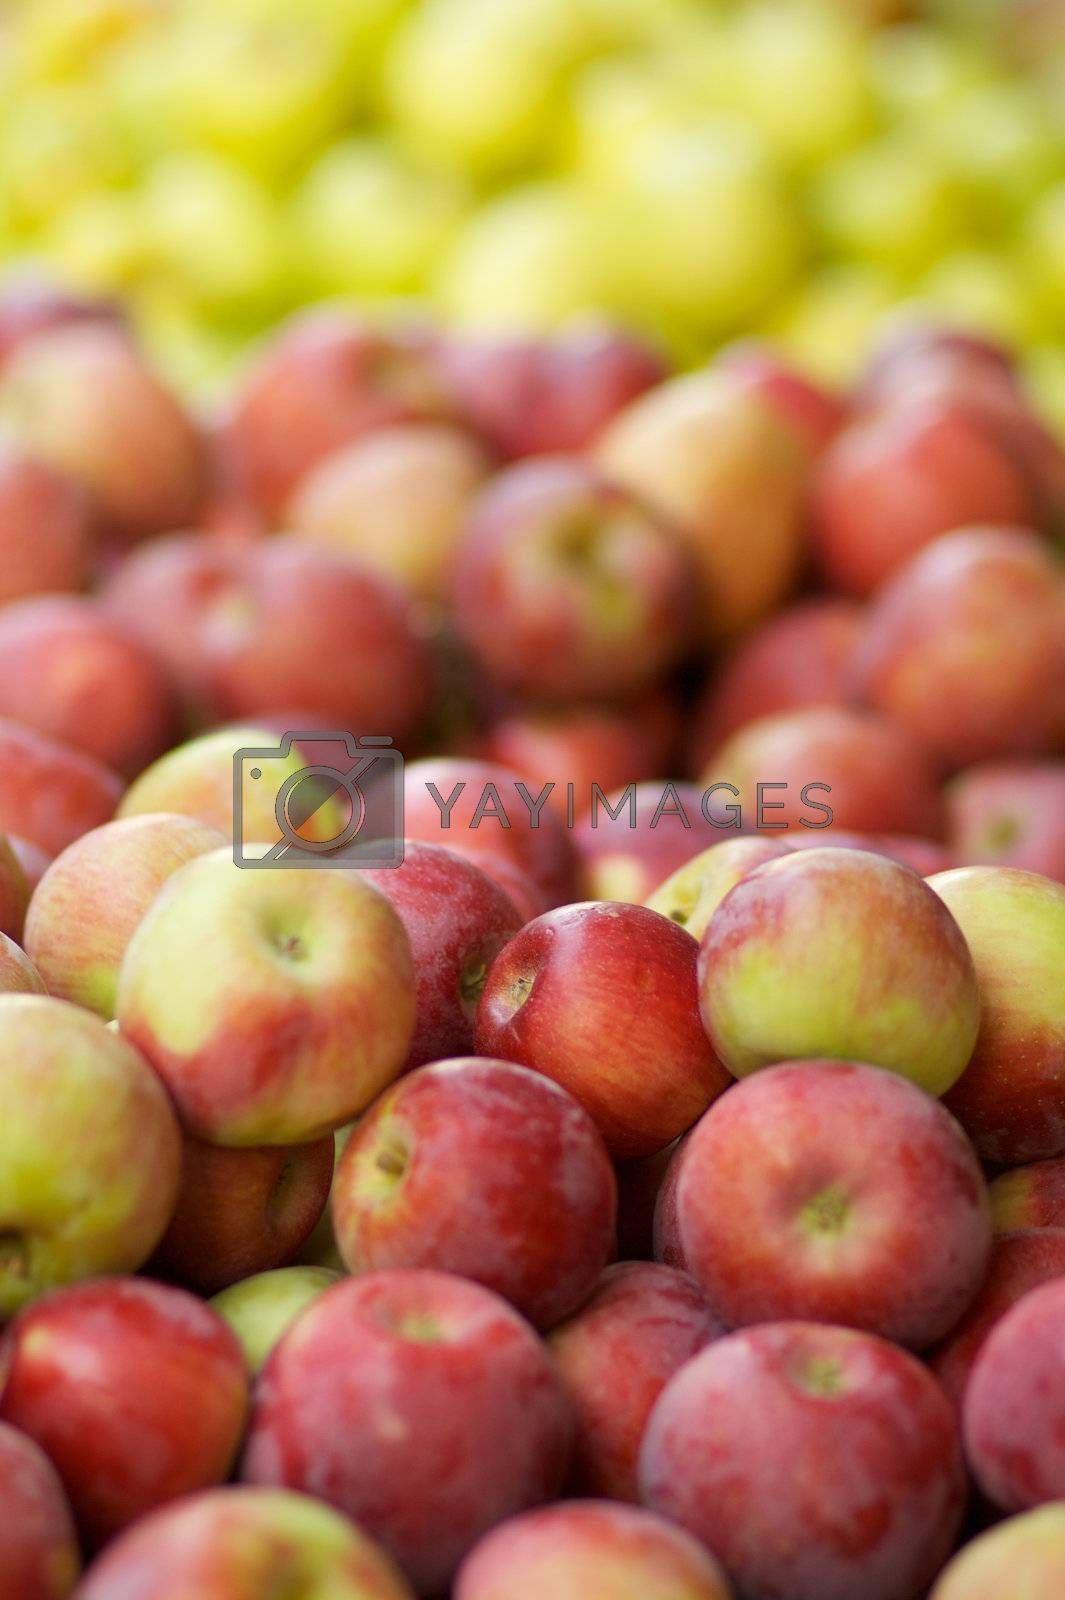 Royalty free image of Red and green Apples by bobkeenan